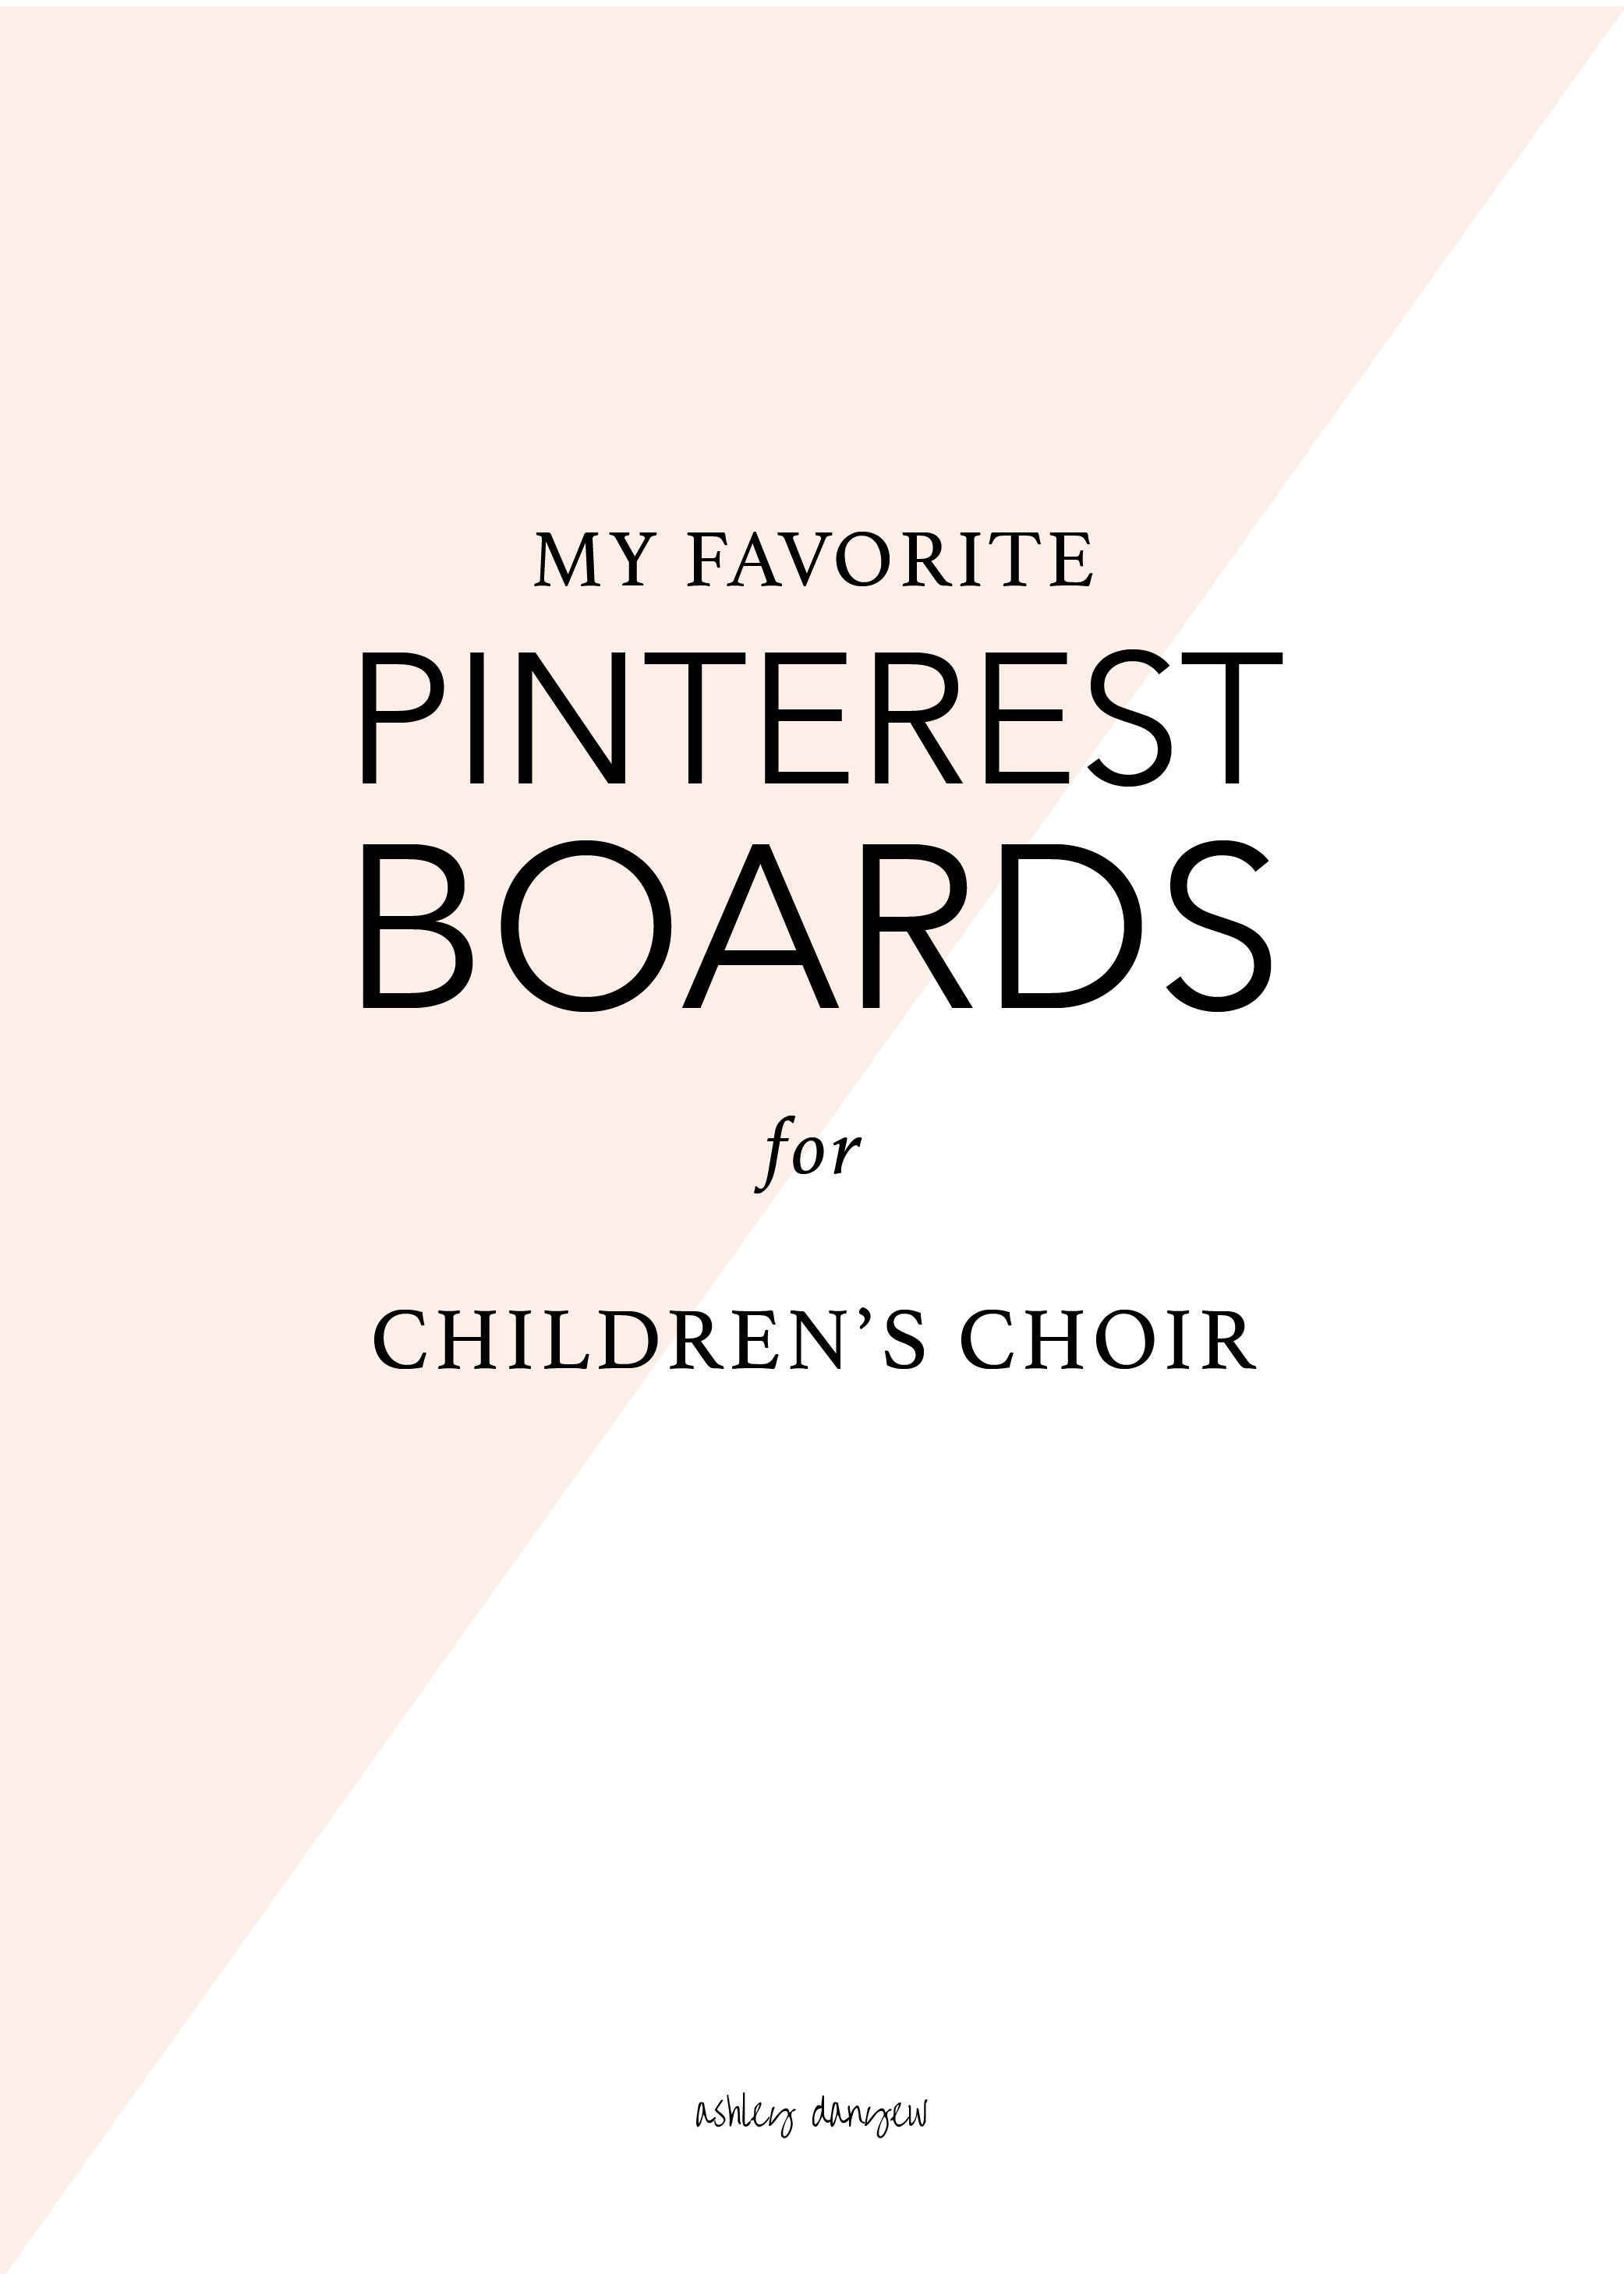 My Favorite Pinterest Boards for Children's Choir-01.png